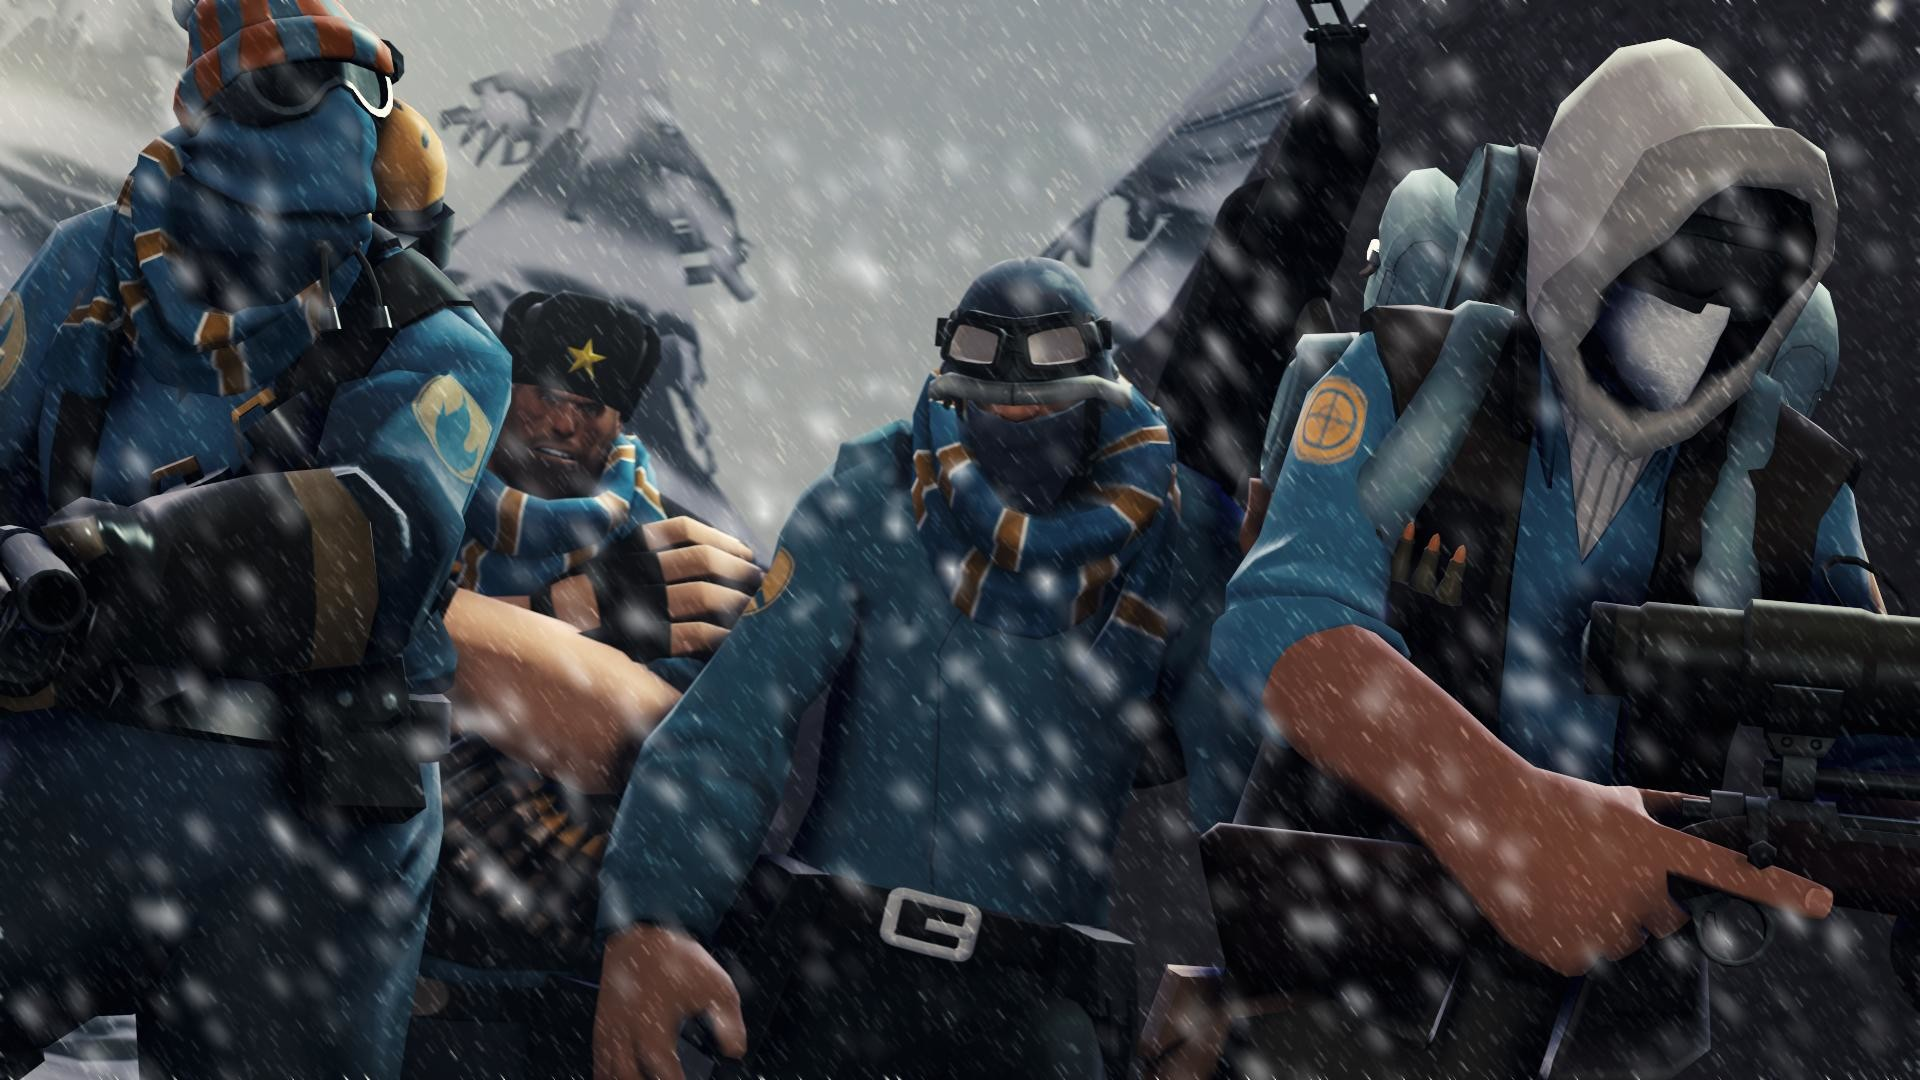 99 MORE TF2 Wallpapers made in SFM